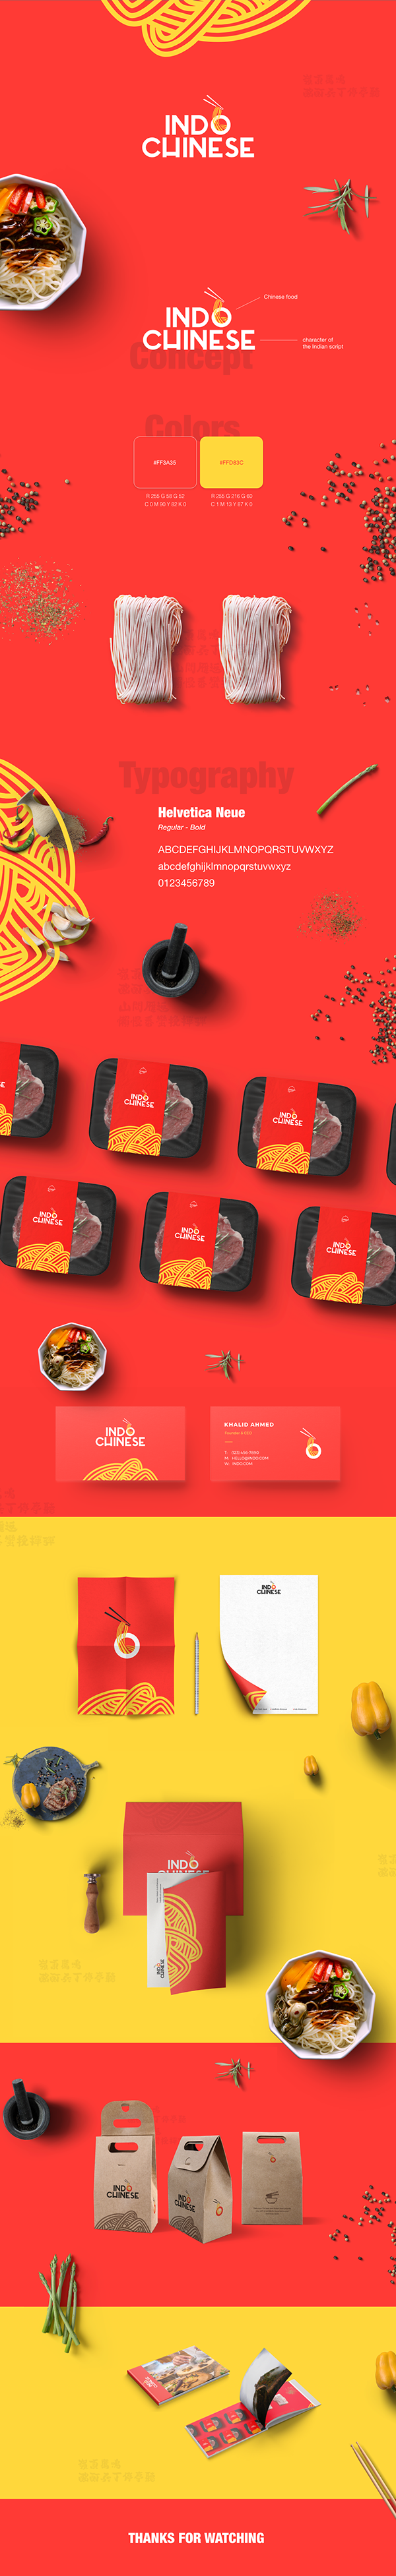 Chinese Images Photos Videos Logos Illustrations And Branding On Behance